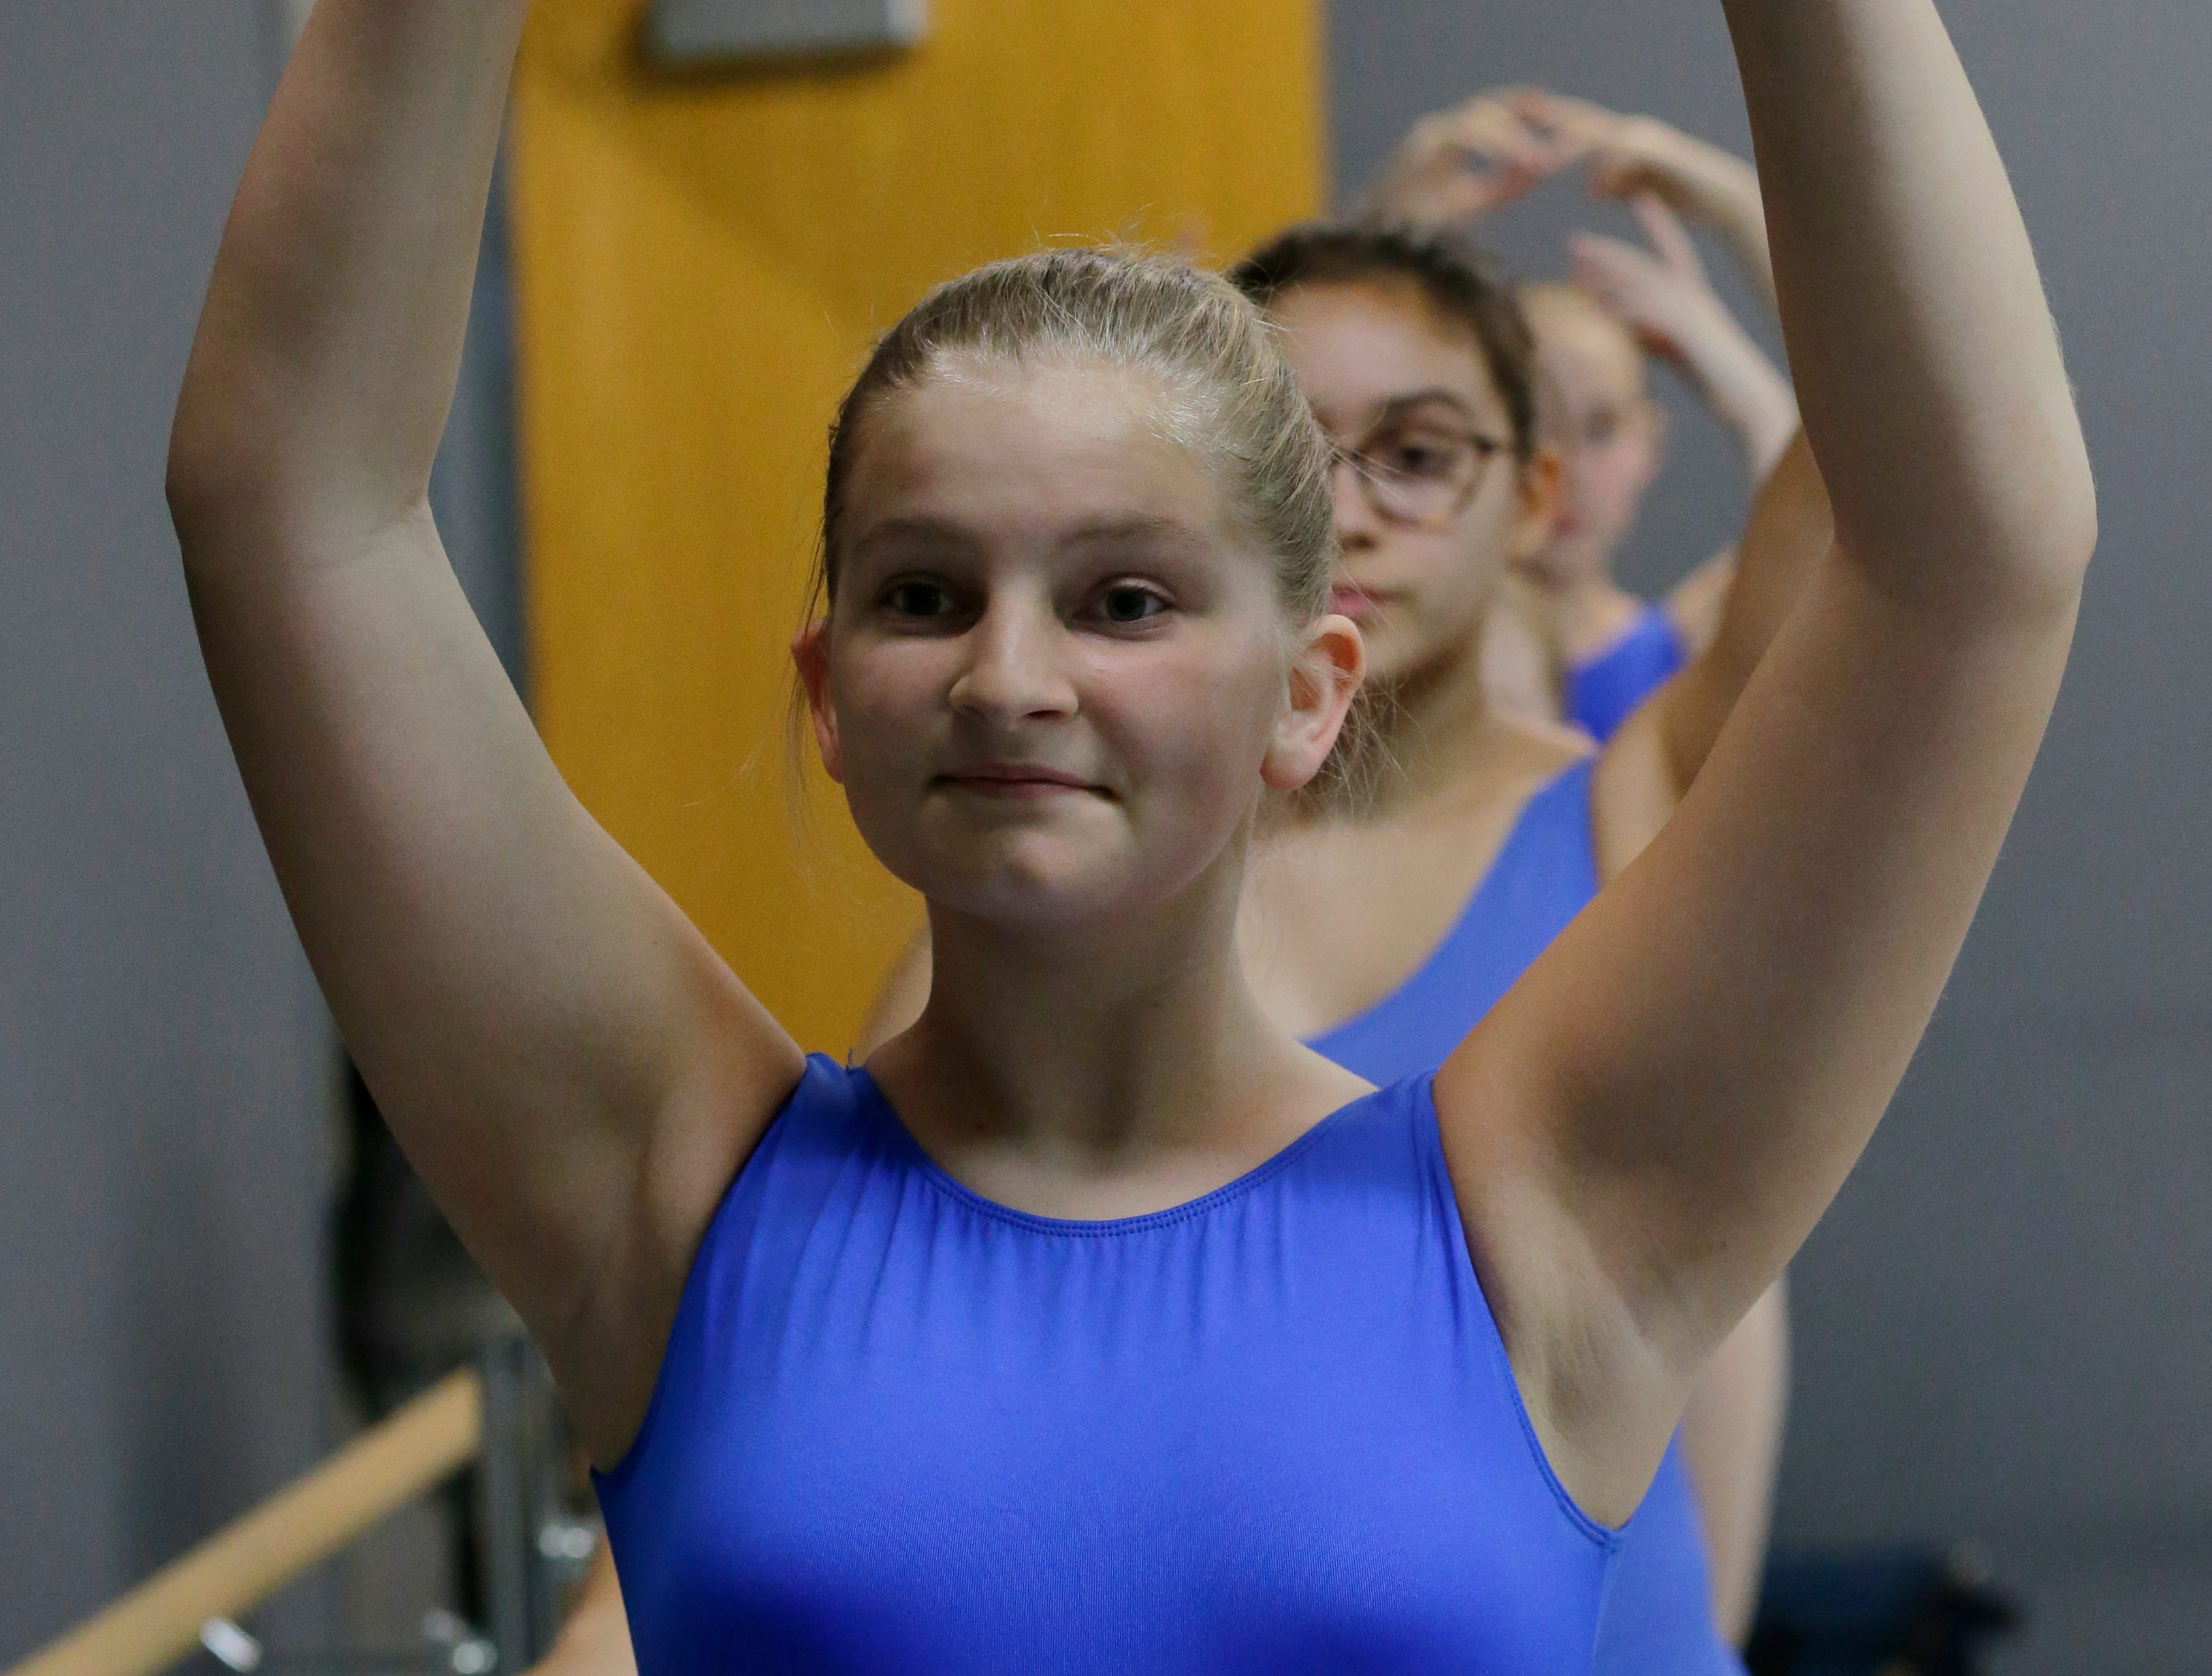 Anabelle Busch practices during her session.  Dancers practice ballet at Valley Academy of the Arts located at 139 N. Lake Street in Neenah, Wis., Tuesday, December 4, 2018.